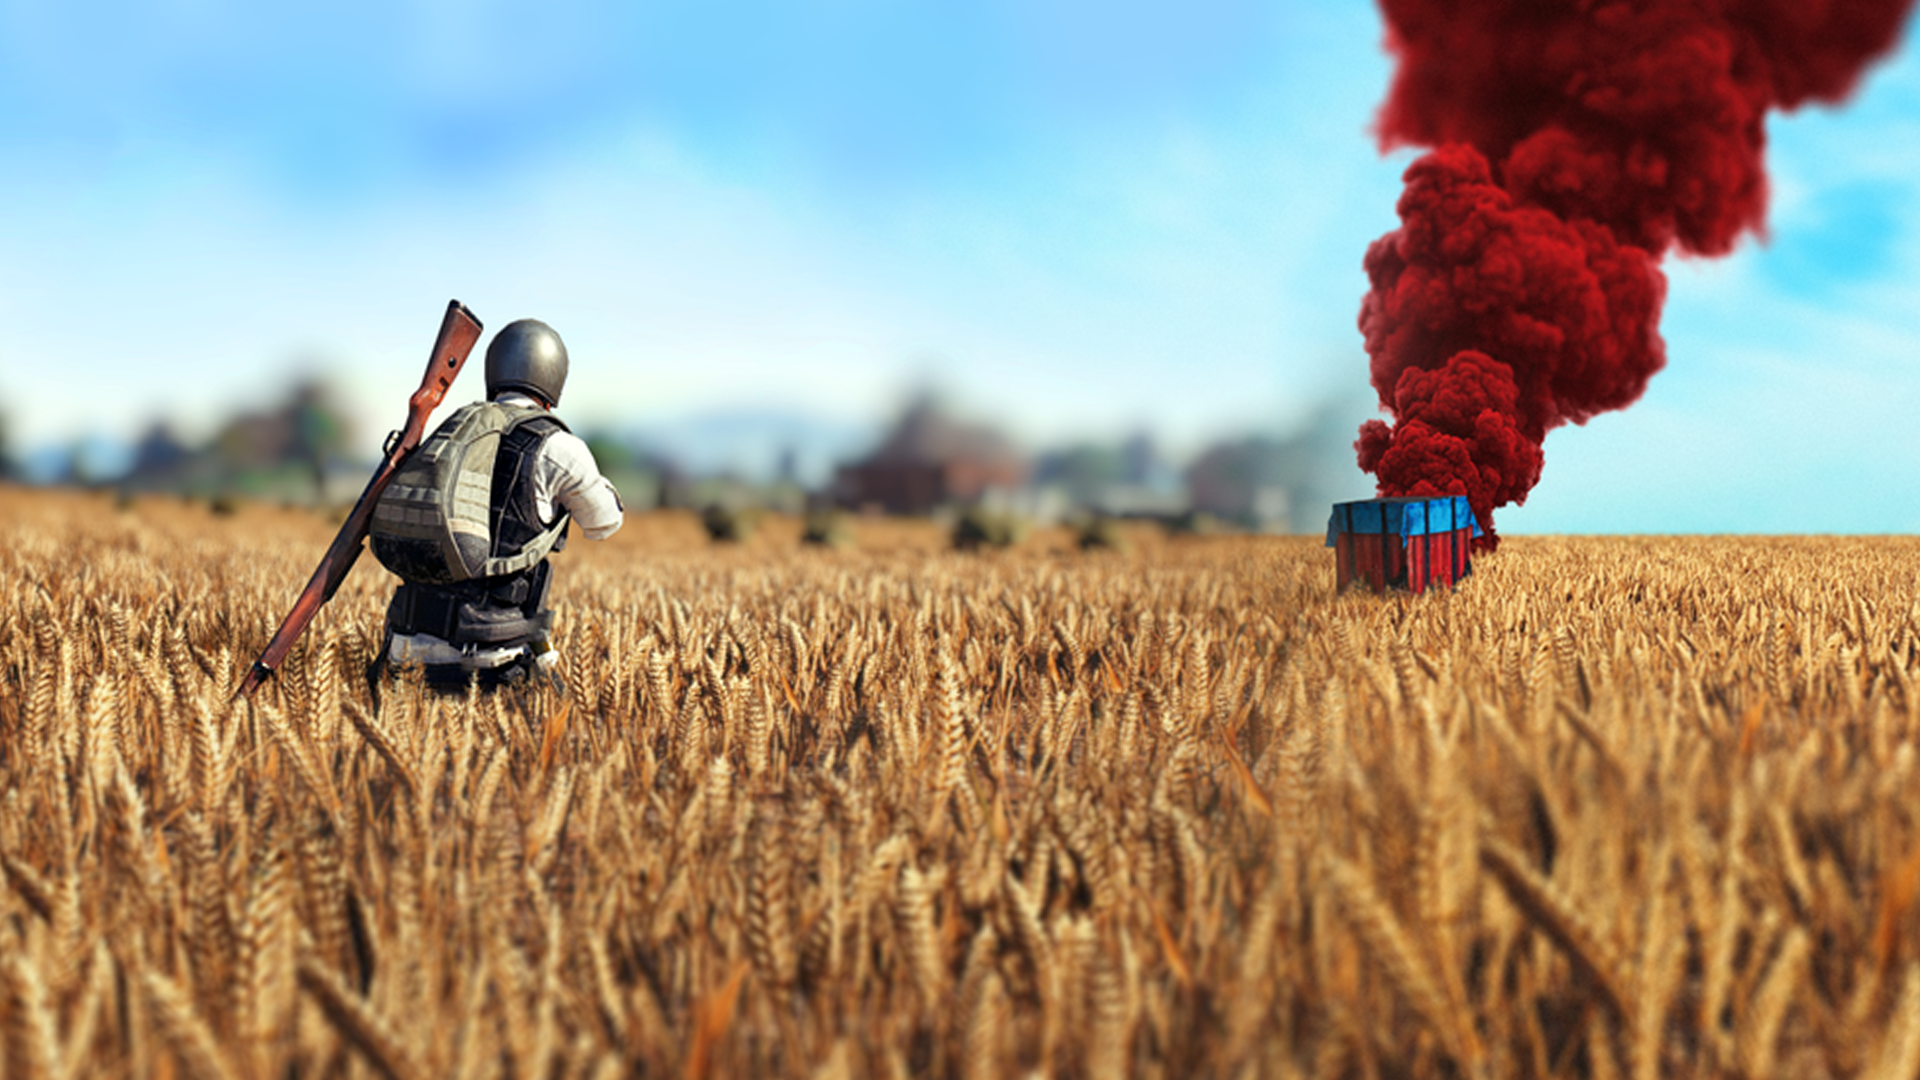 Pubg Hd Wallpaper Iphone: Pubg Papel De Parede HD